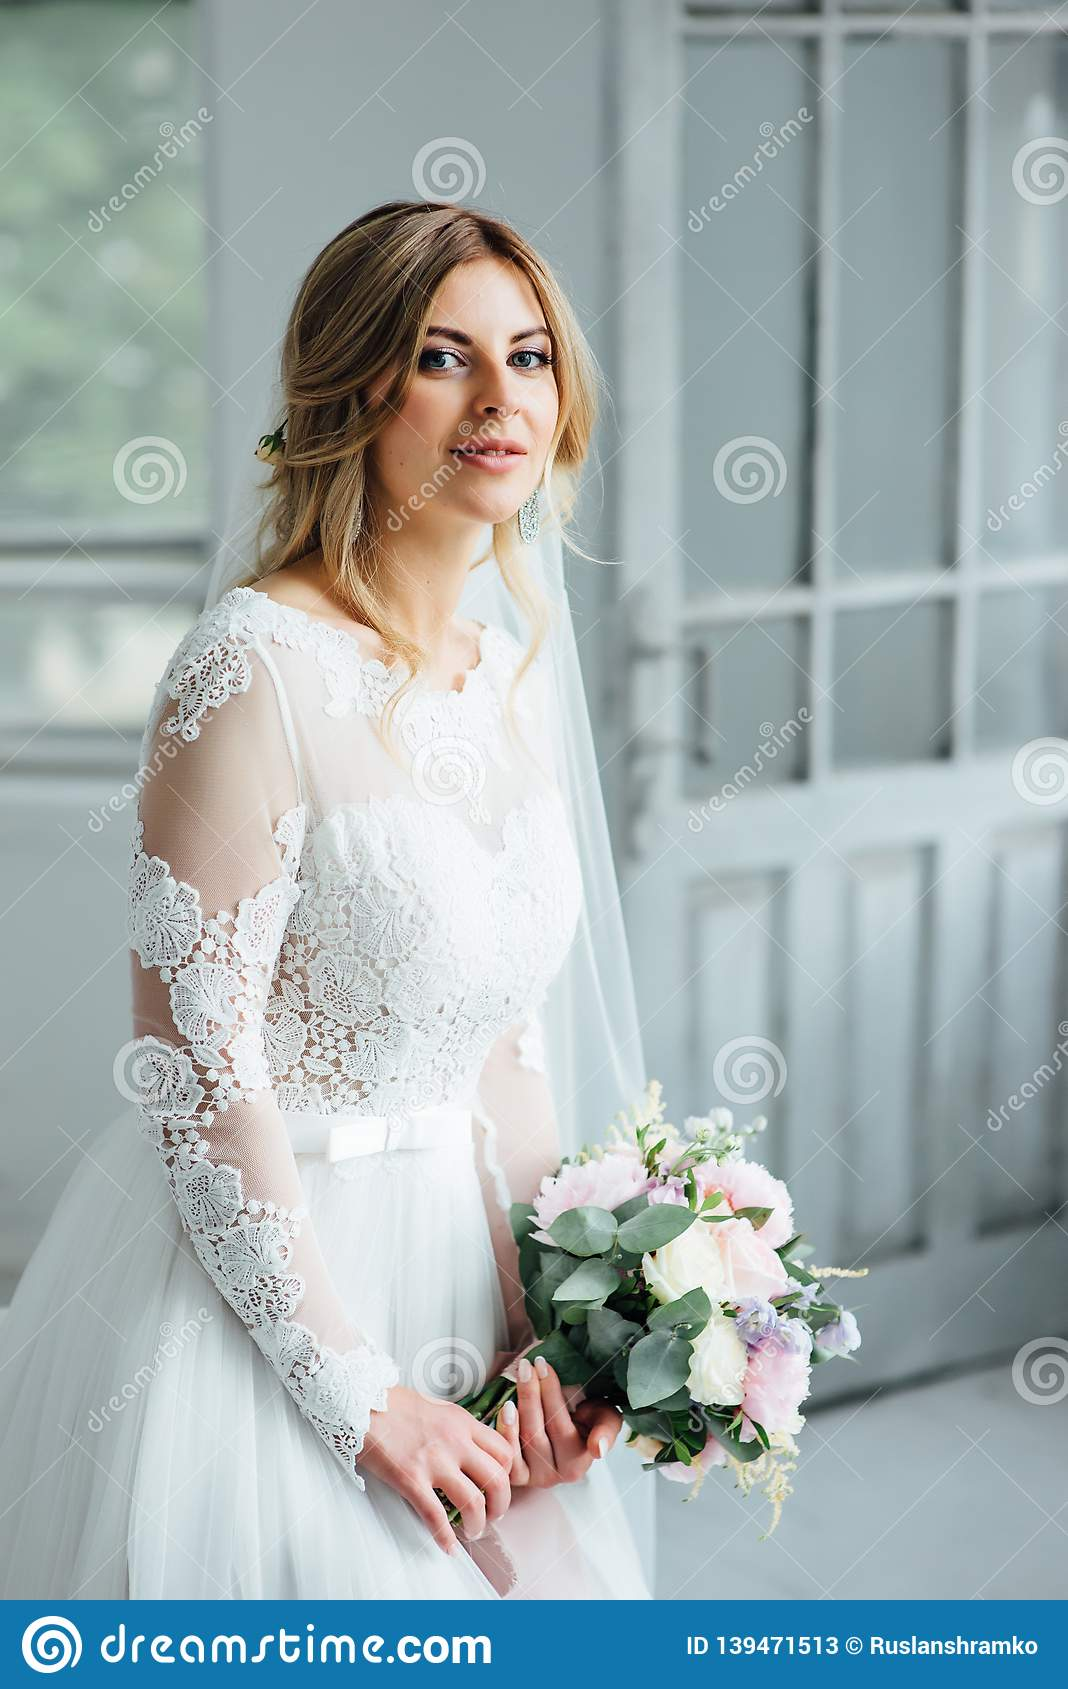 Beautiful Bride In White Wedding Dress With A Wedding Bouquet